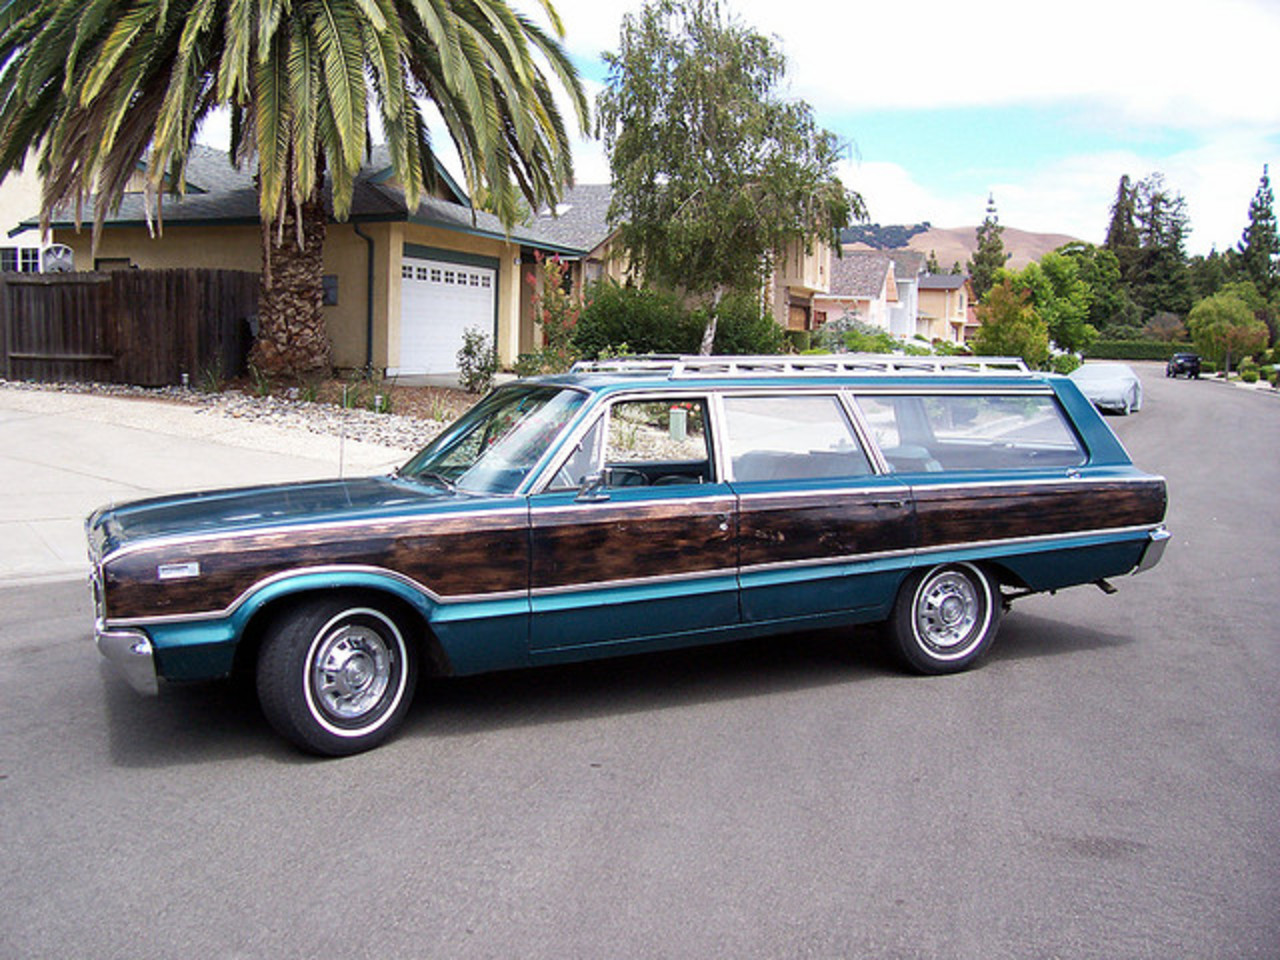 65 Dodge 880 Custom Wagon | Flickr - Photo Sharing!